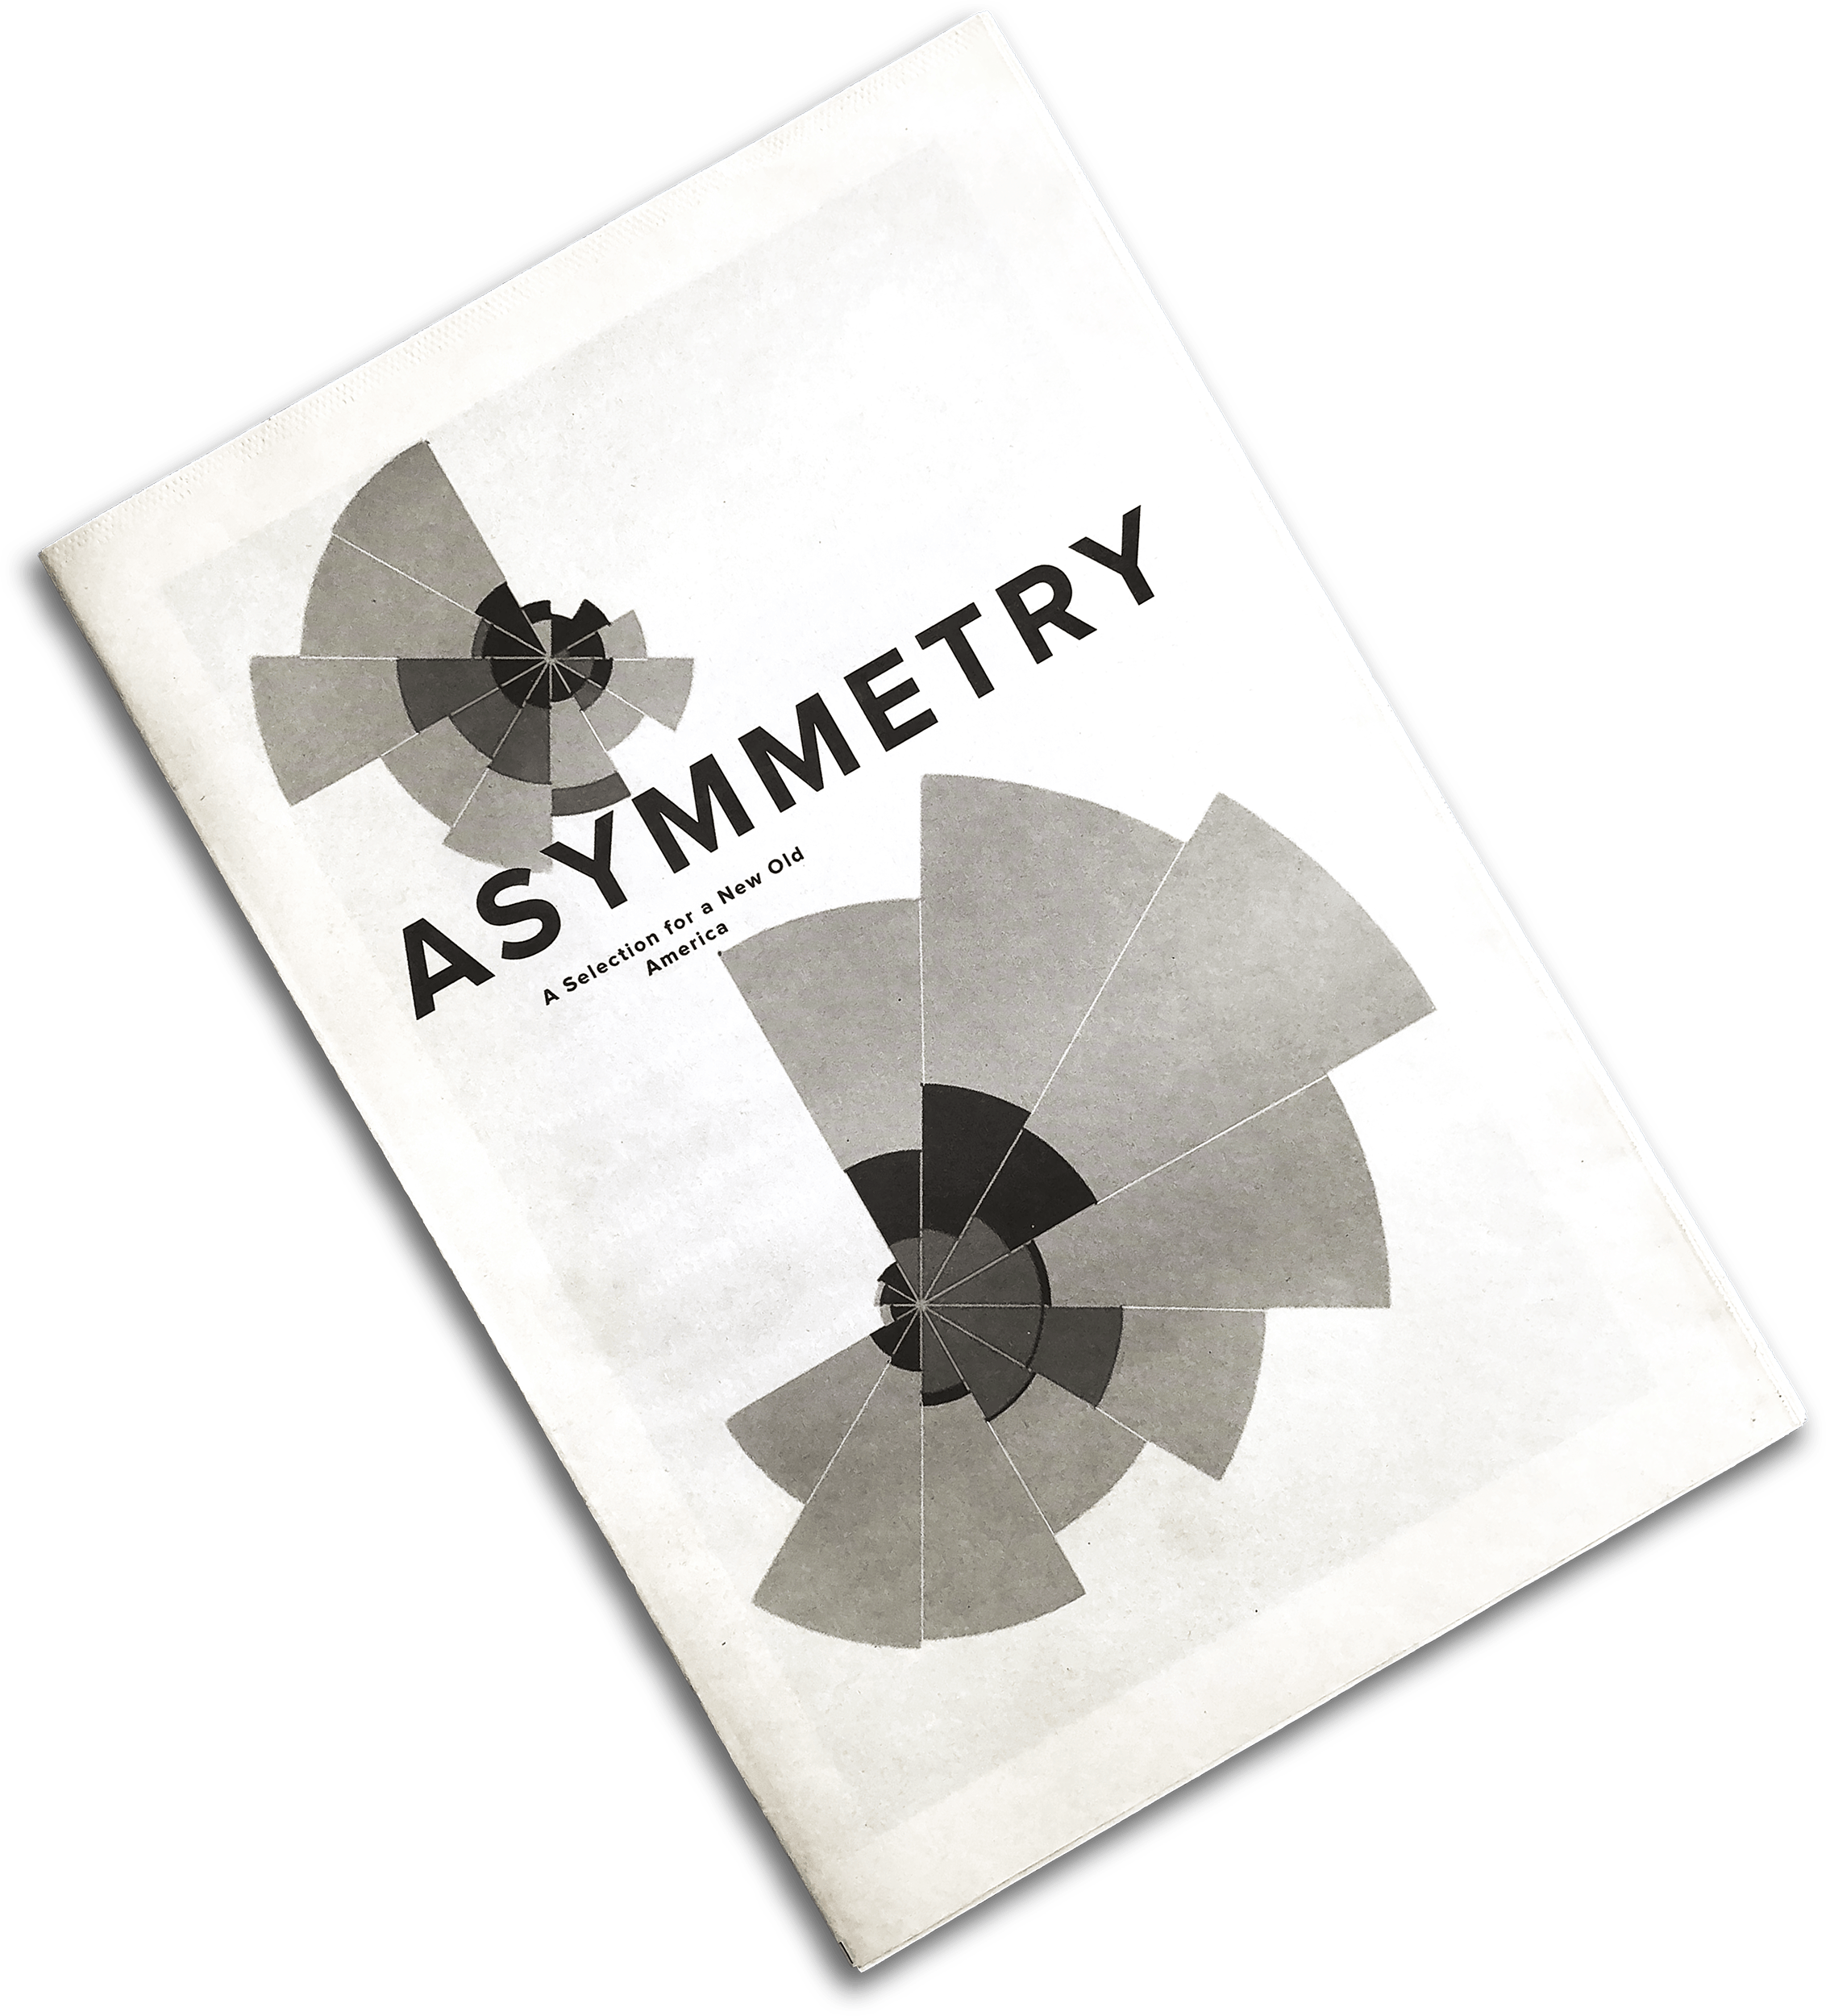 "ASYMMETRY is our second broadsheet series, and developed in response to the election of Donald Trump. Exploring the pervasive culture of misogyny and white supremacy within the United States, we worked with writers and artists to address how the administration will affect them, what organizations we can donate to or get involved with, and what needs to be done to ameliorate the fallout.  Edited by: Janneane & Benjamin Blevins  Published by: PRINTtEXT  Contributors  Elle Roberts ""Pray Without Ceasing"" Lauren Zoll ""Her First Flag"" Devon Ginn ""Threatened With Extinction"" Indiana Undocumented Youth Alliance ""Message to Our Community, Allies, and Political Leaders"" Jennifer Delgadillo ""Indianapolis as an Example of How to Thrive in Spite of Pence"" Hannah Harris ""Perfect is the Enemy of Good"" Danicia Monét ""Universal Permission Slip to Disengage"" Ess McKee ""Chisholm for President"" Rhett Dial ""Family Values in the Apocalypse"" Taryn Cassella ""She is the male idea of a women let loose"" Michael Kaufmann ""Lament and Act"" Nathaniel Russell ""Resist Fear, Assist Love"" Bree Jo'ann ""Inner City, Inner Forest"" Erin K. Drew ""Sabotage Complacency"" Ari Attack ""Protest Playlist"" Theon Lee ""And Onward Rotates the Fan"" Manuja Waldia ""Pantsuits""    ASYMMETRY was published on November 23, 2016.   This is where we are and where we've been and where we're going. This is much more than an election and more nuanced than our binary political system. This moment demands action.  In response to the election of Donald Trump and the already-pervasive culture of misogyny and white supremacy within the United States, we worked with writers and artists to address how the next administration will affect them, what organizations we can donate to or get involved with, and what needs to be done to ameliorate the fallout.  Download a PDF here."